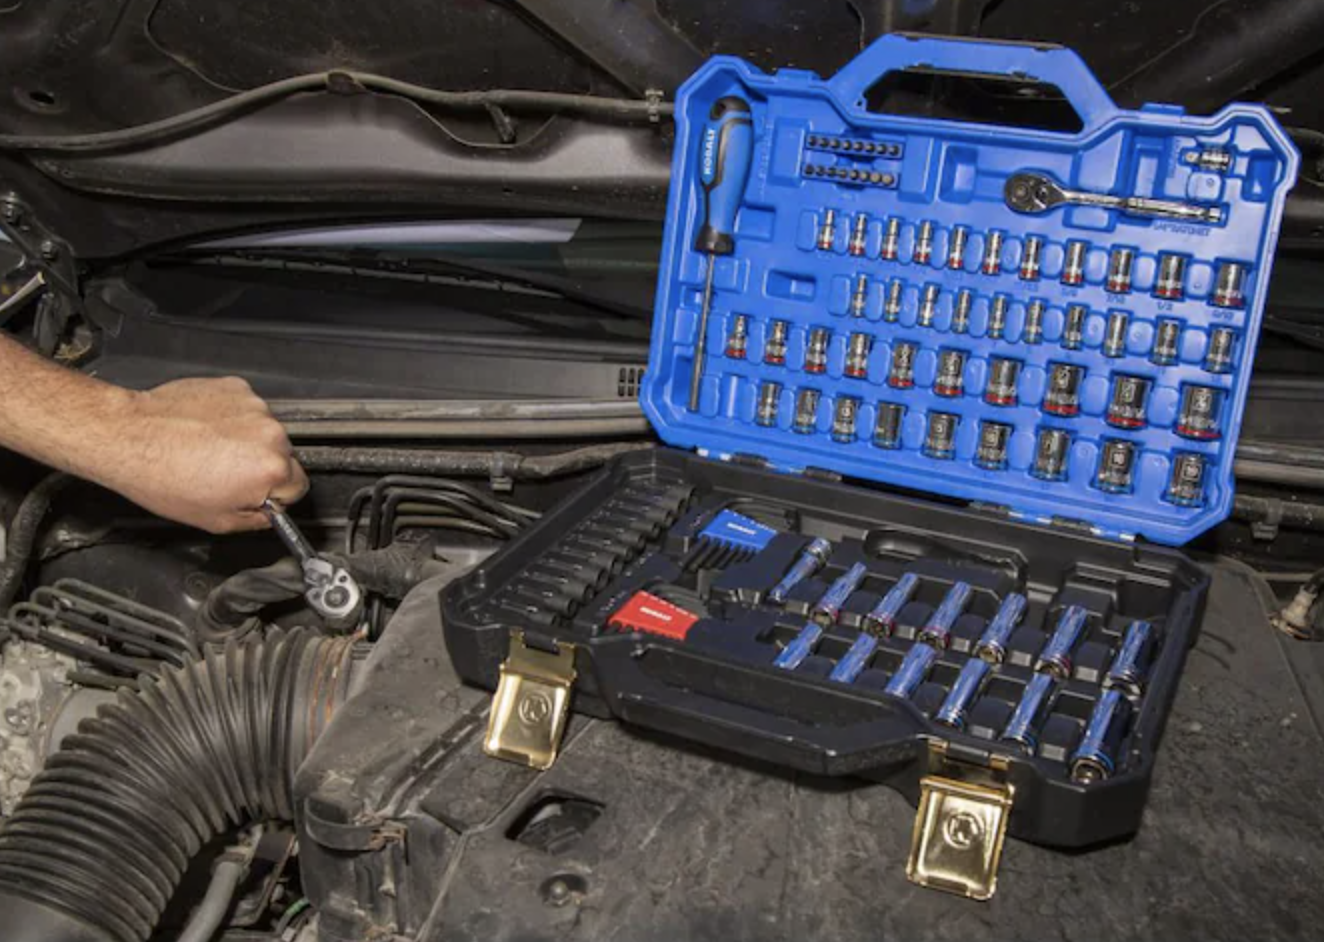 Toolkit placed inside hood of car with model using tools on car